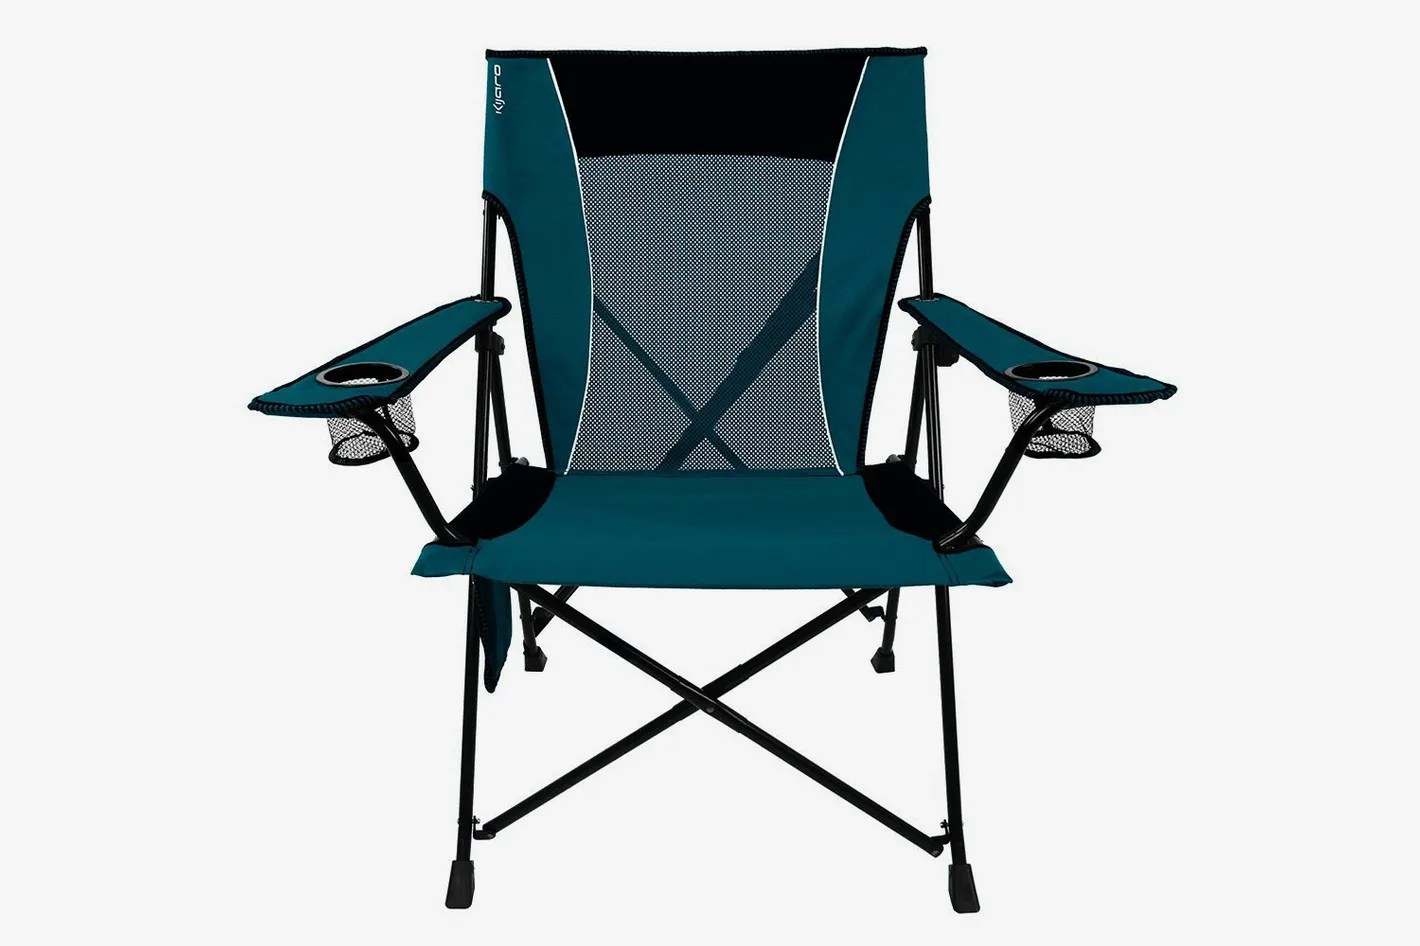 portable folding chairs ergonomic office chair malaysia 11 best lawnchairs and camping 2018 kijaro dual lock sports